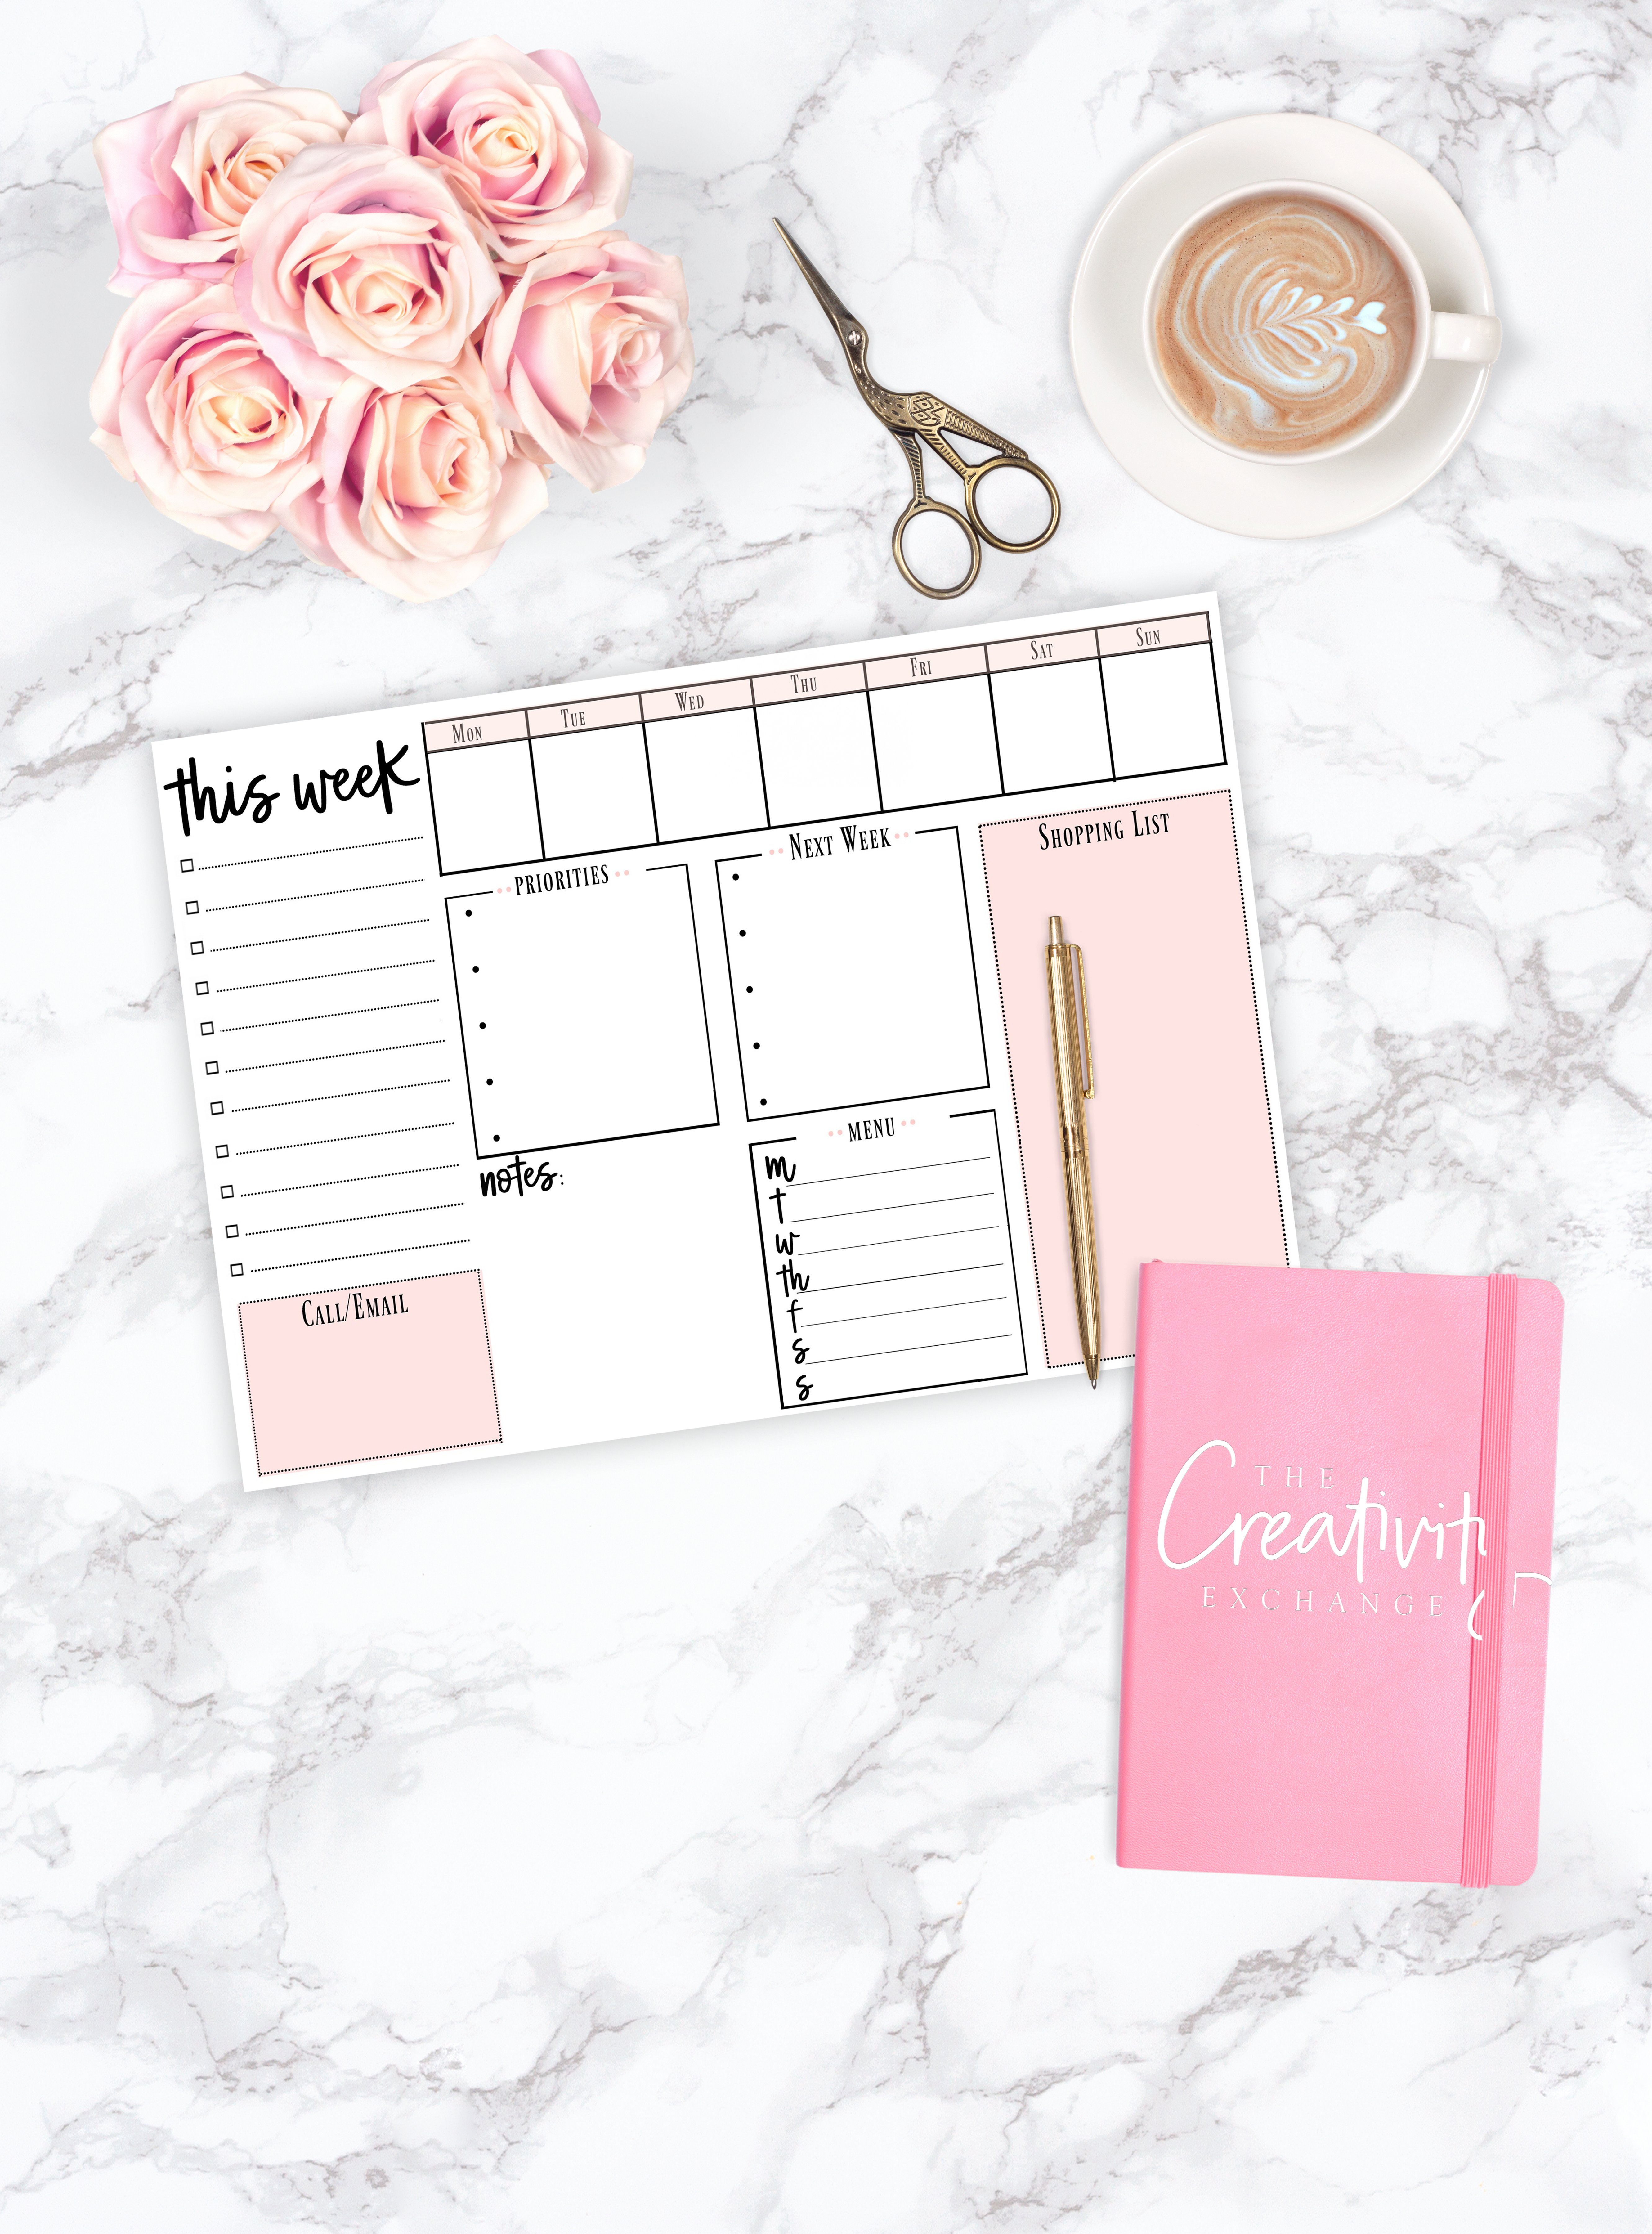 photograph regarding Printable to Do Lists for Work known as Printable In the direction of Do Lists That Function